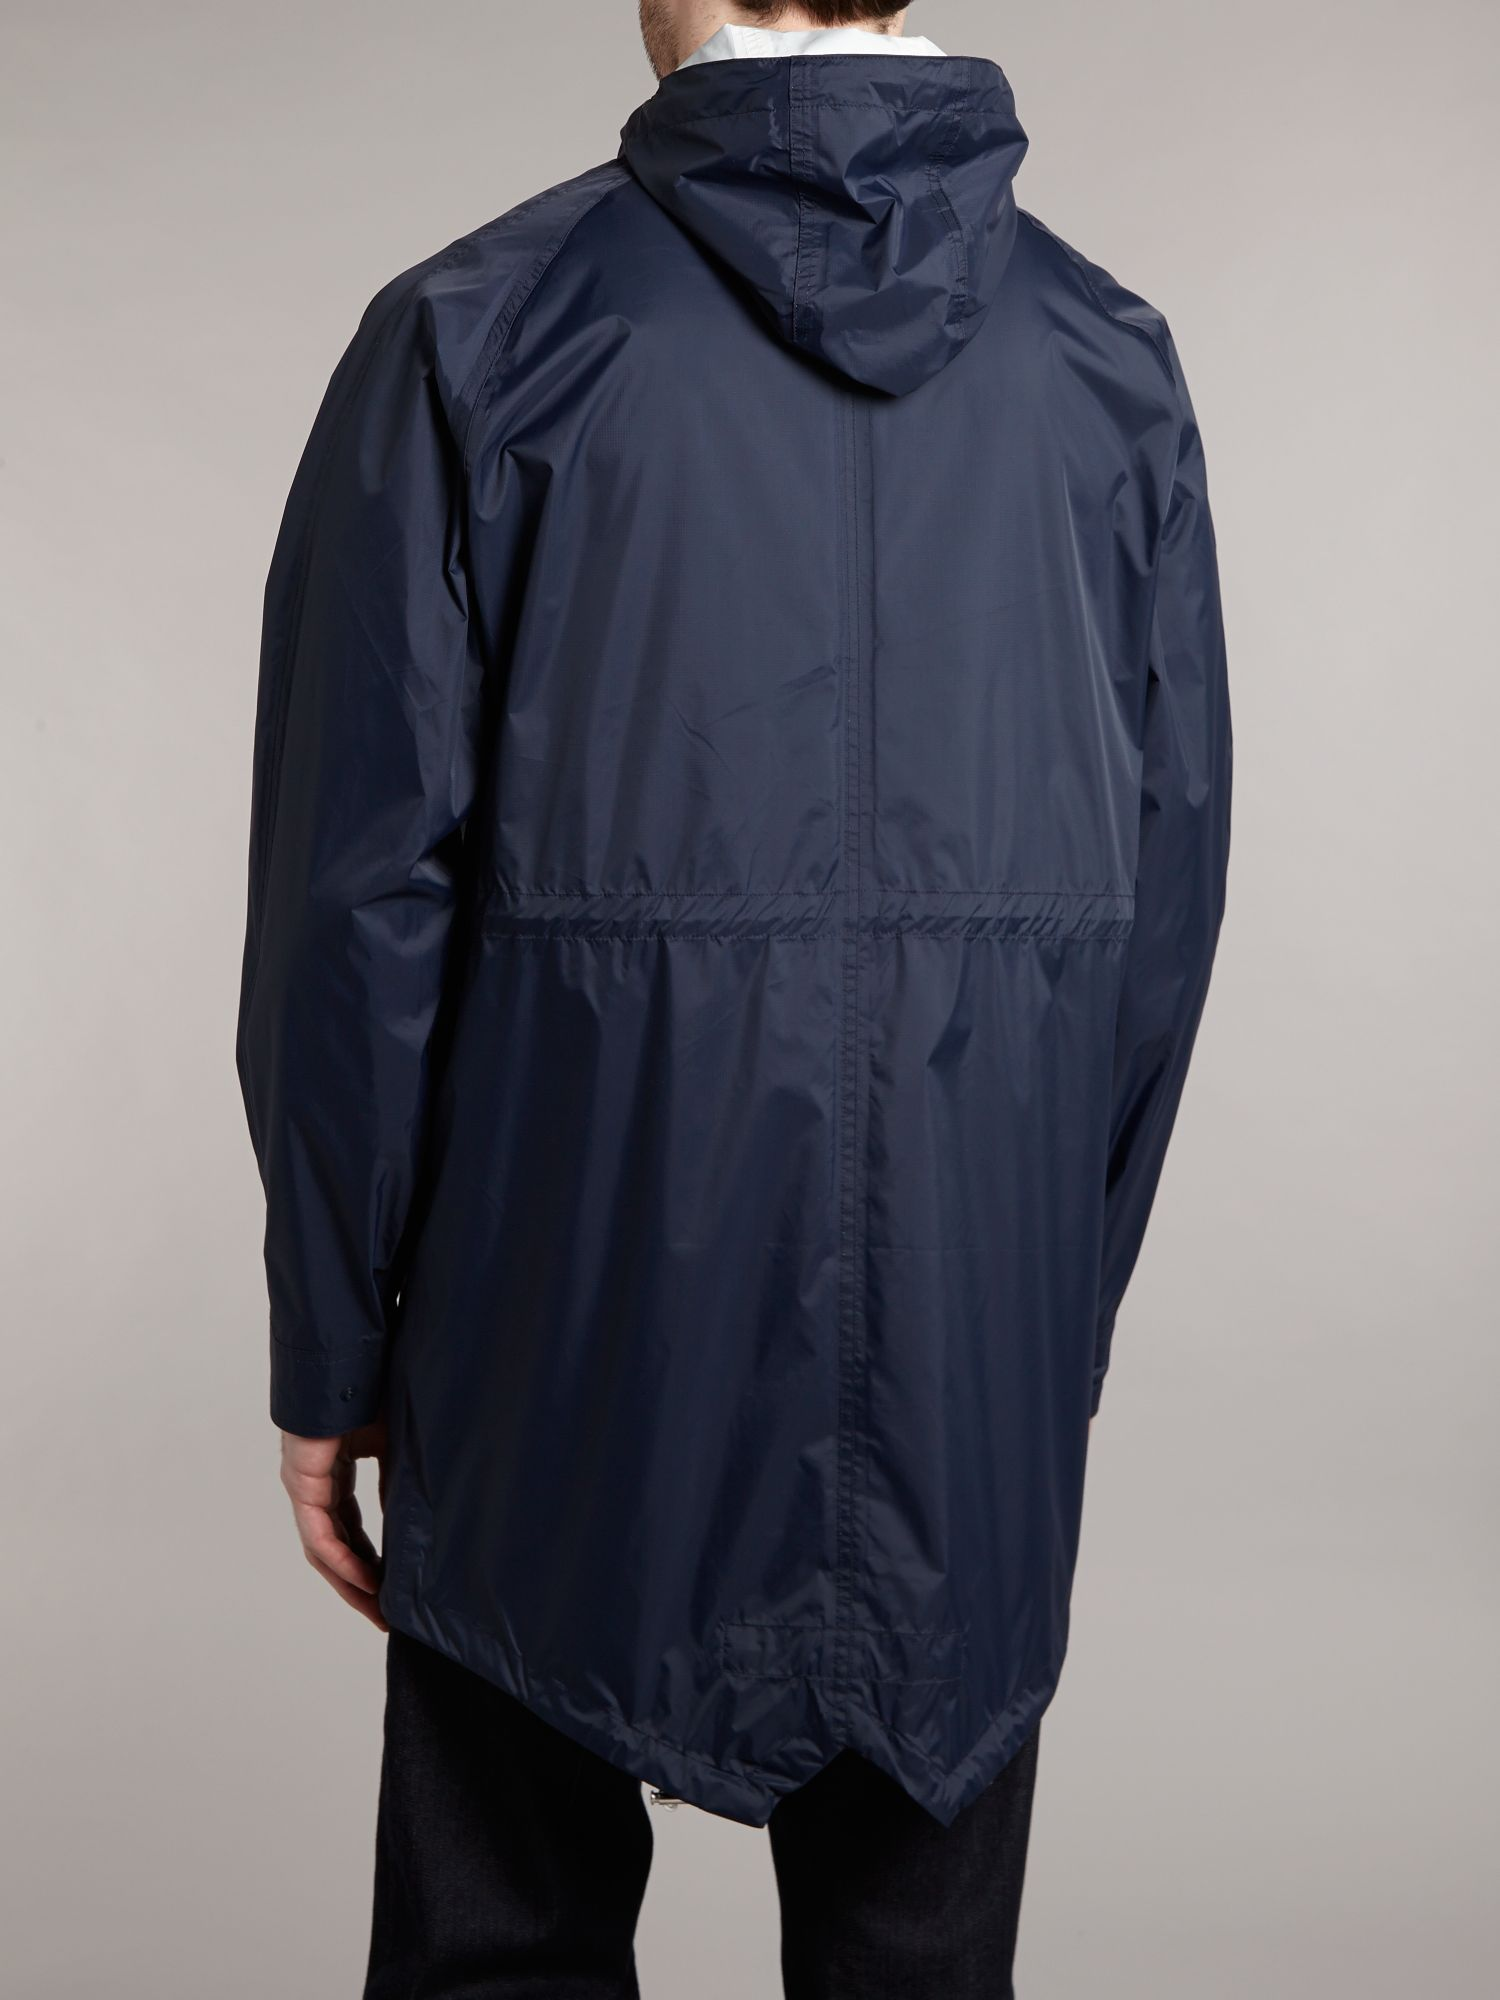 fred perry light weight hooded parka jacket in blue for men lyst. Black Bedroom Furniture Sets. Home Design Ideas